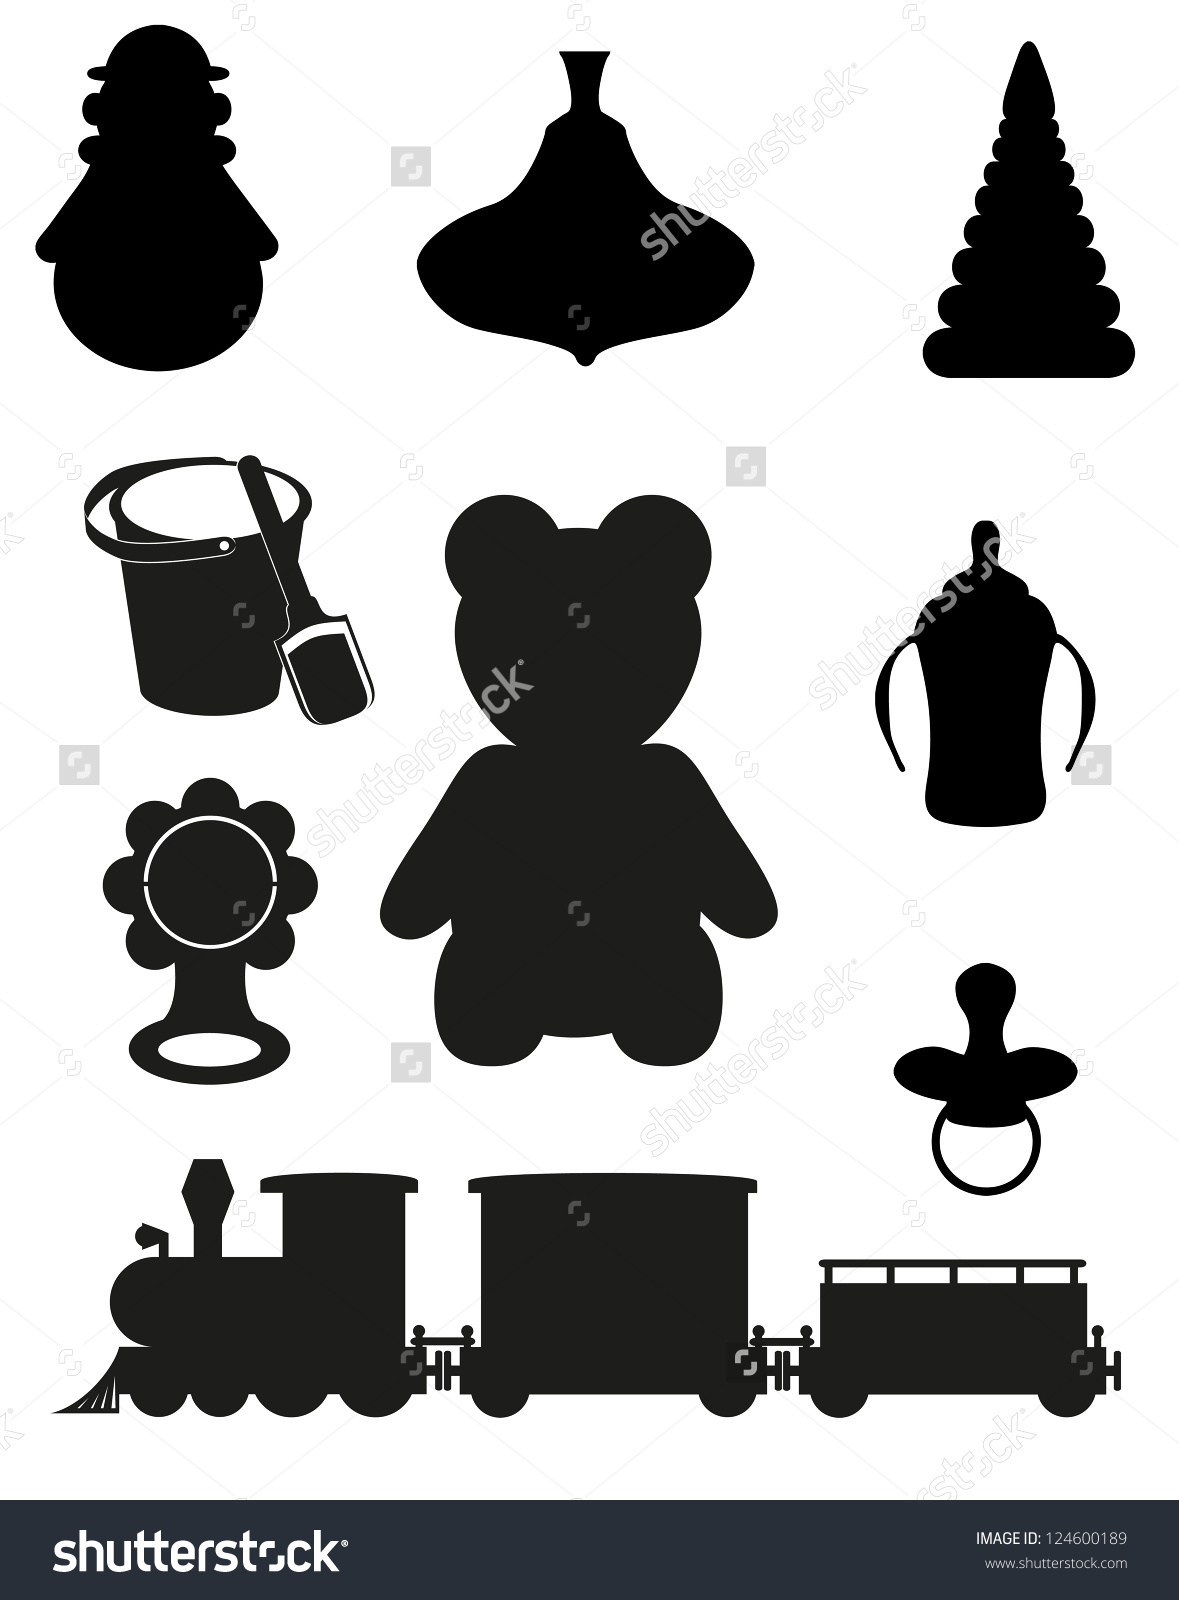 Icon Toys Accessories Babies Children Black Stock Vector 124600189.